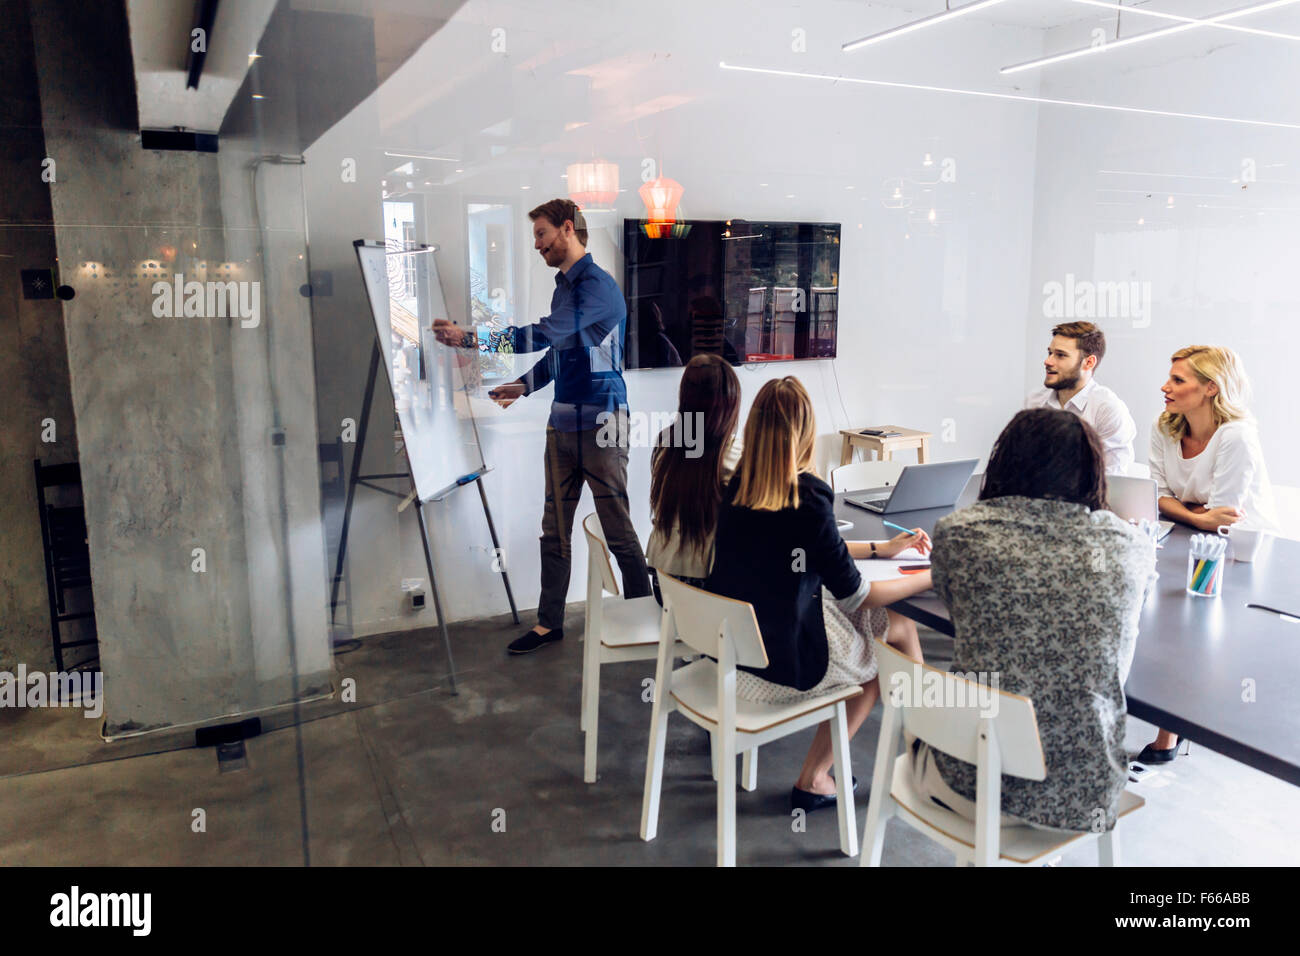 Group of coworkers at an office brainstorming and presentation - Stock Image